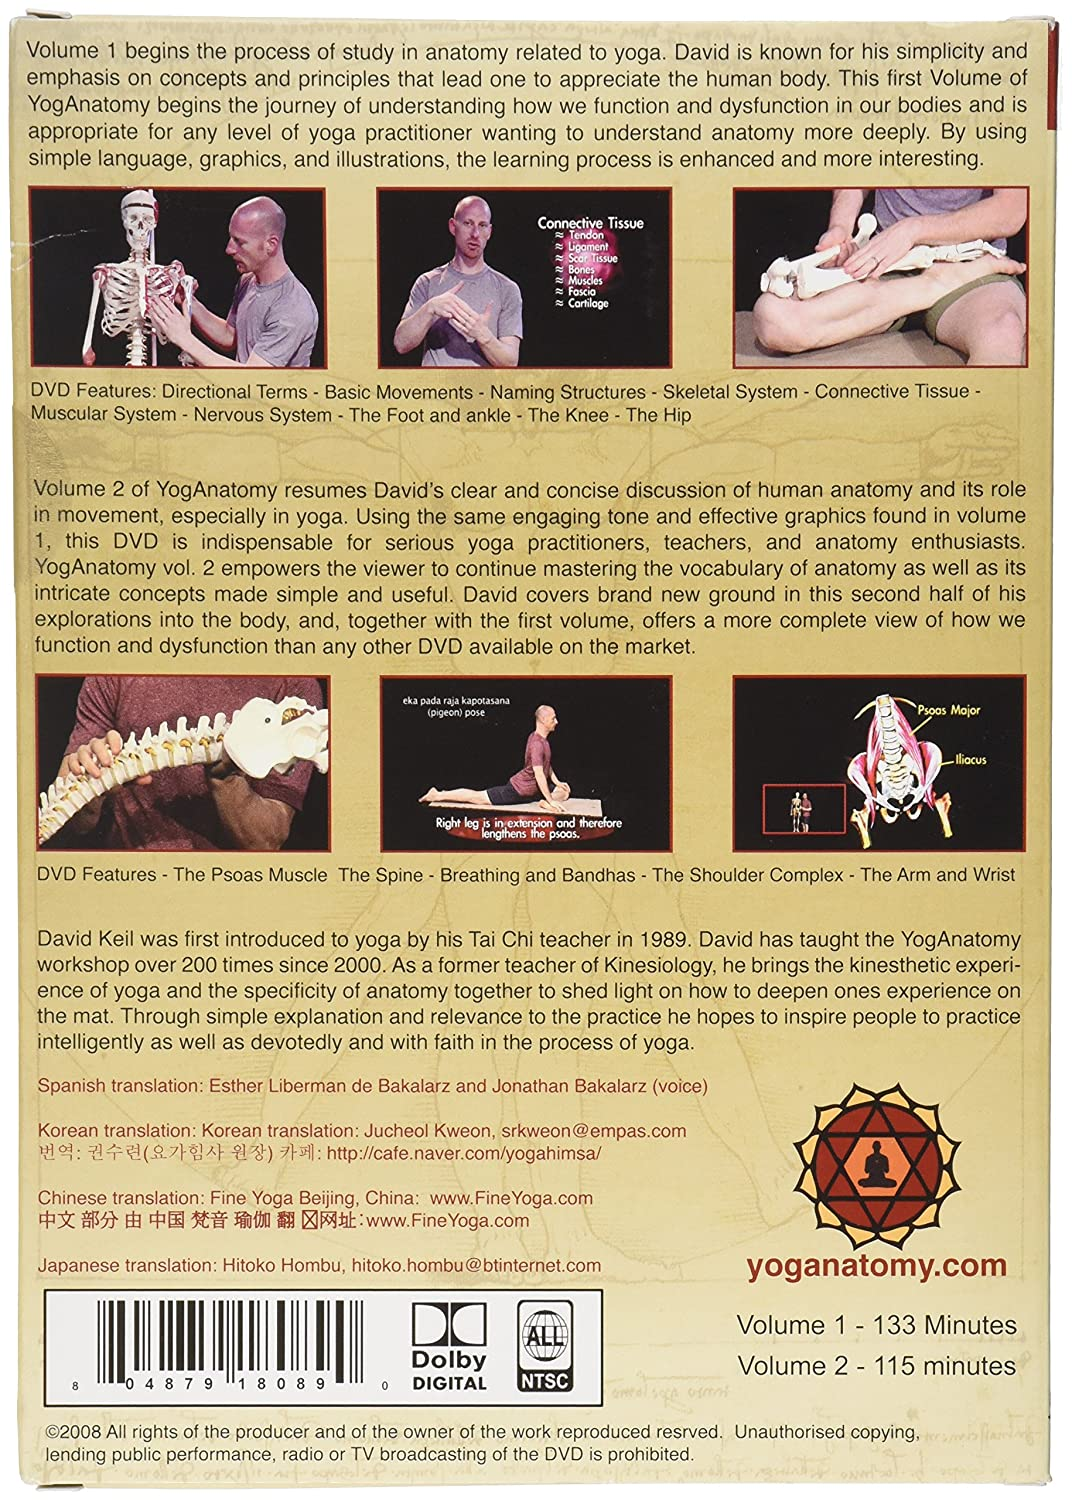 Amazon.com : Yoganatomy, Vol. 1 & 2 : David Keil Dvd : Sports & Outdoors